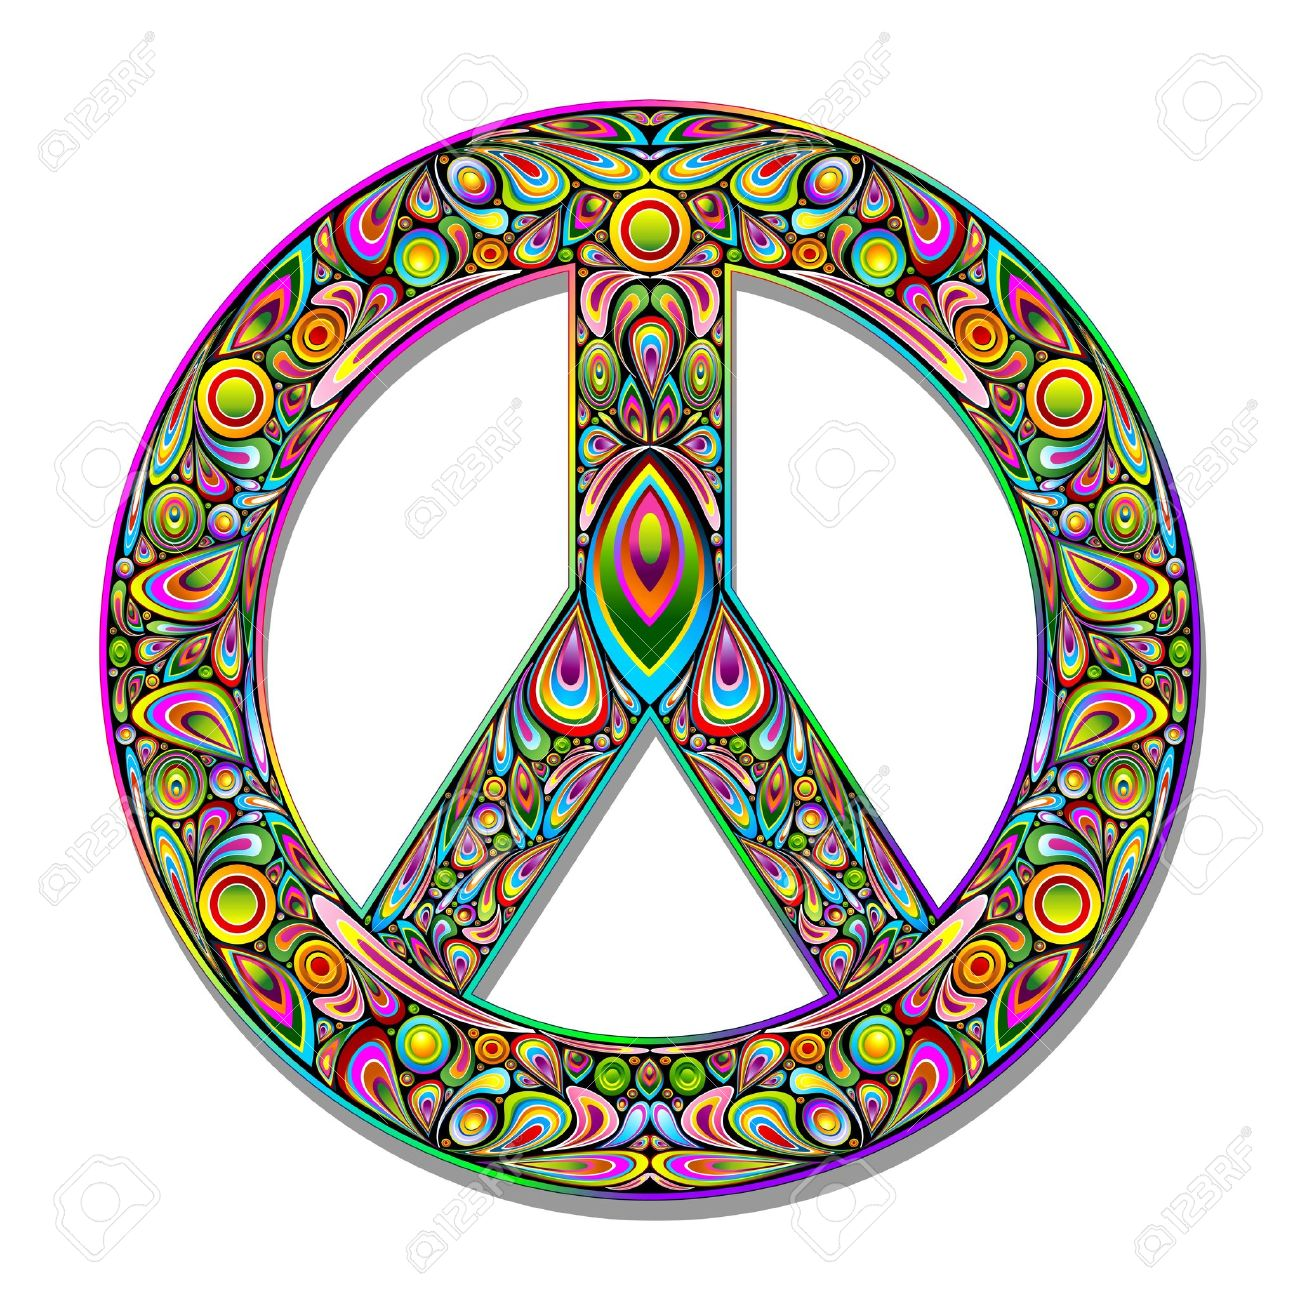 Image result for peace symbol images